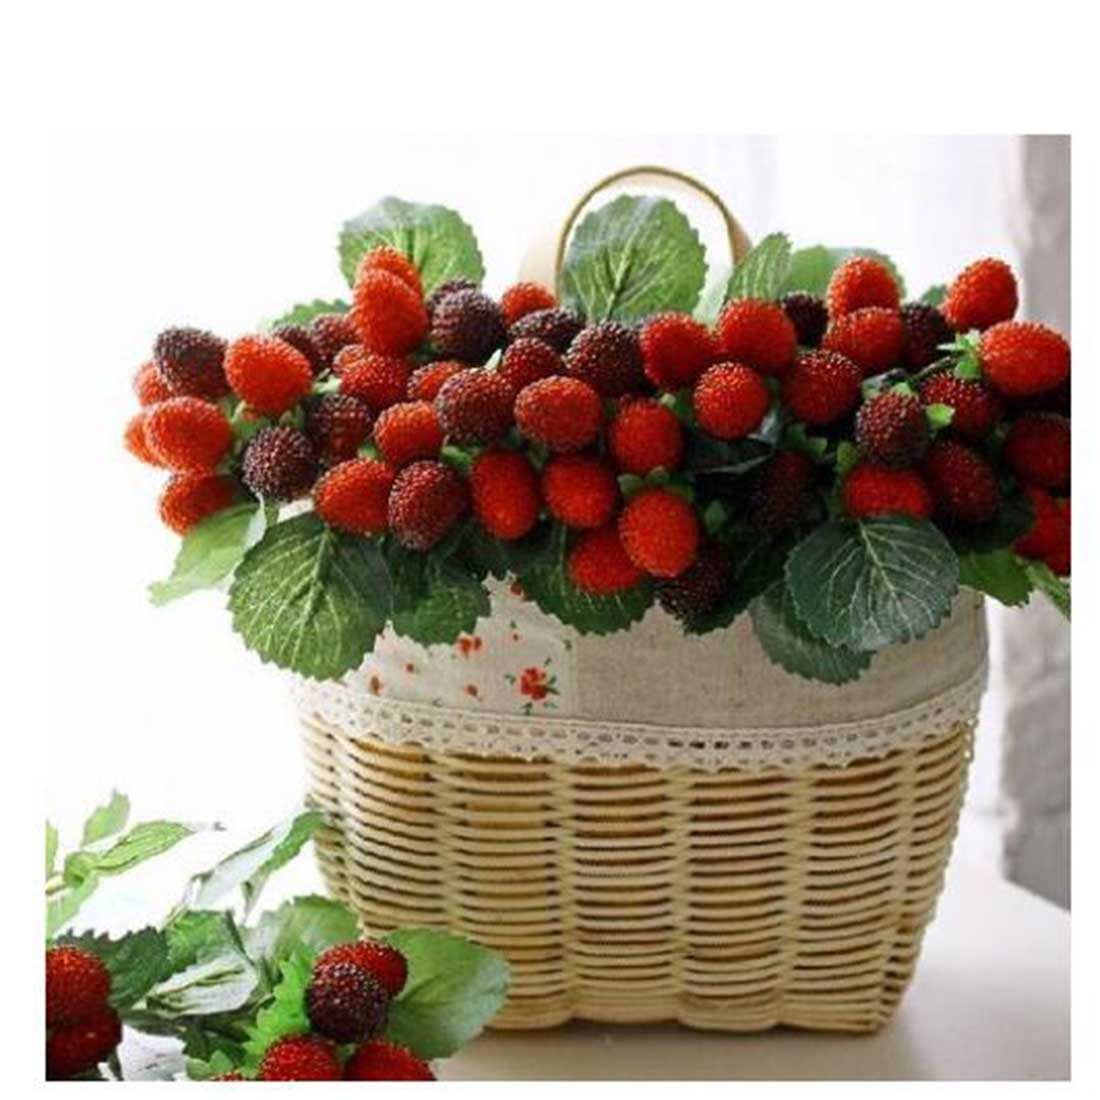 Strawberry home decor 28 images strawberry home decor for Artificial pears decoration